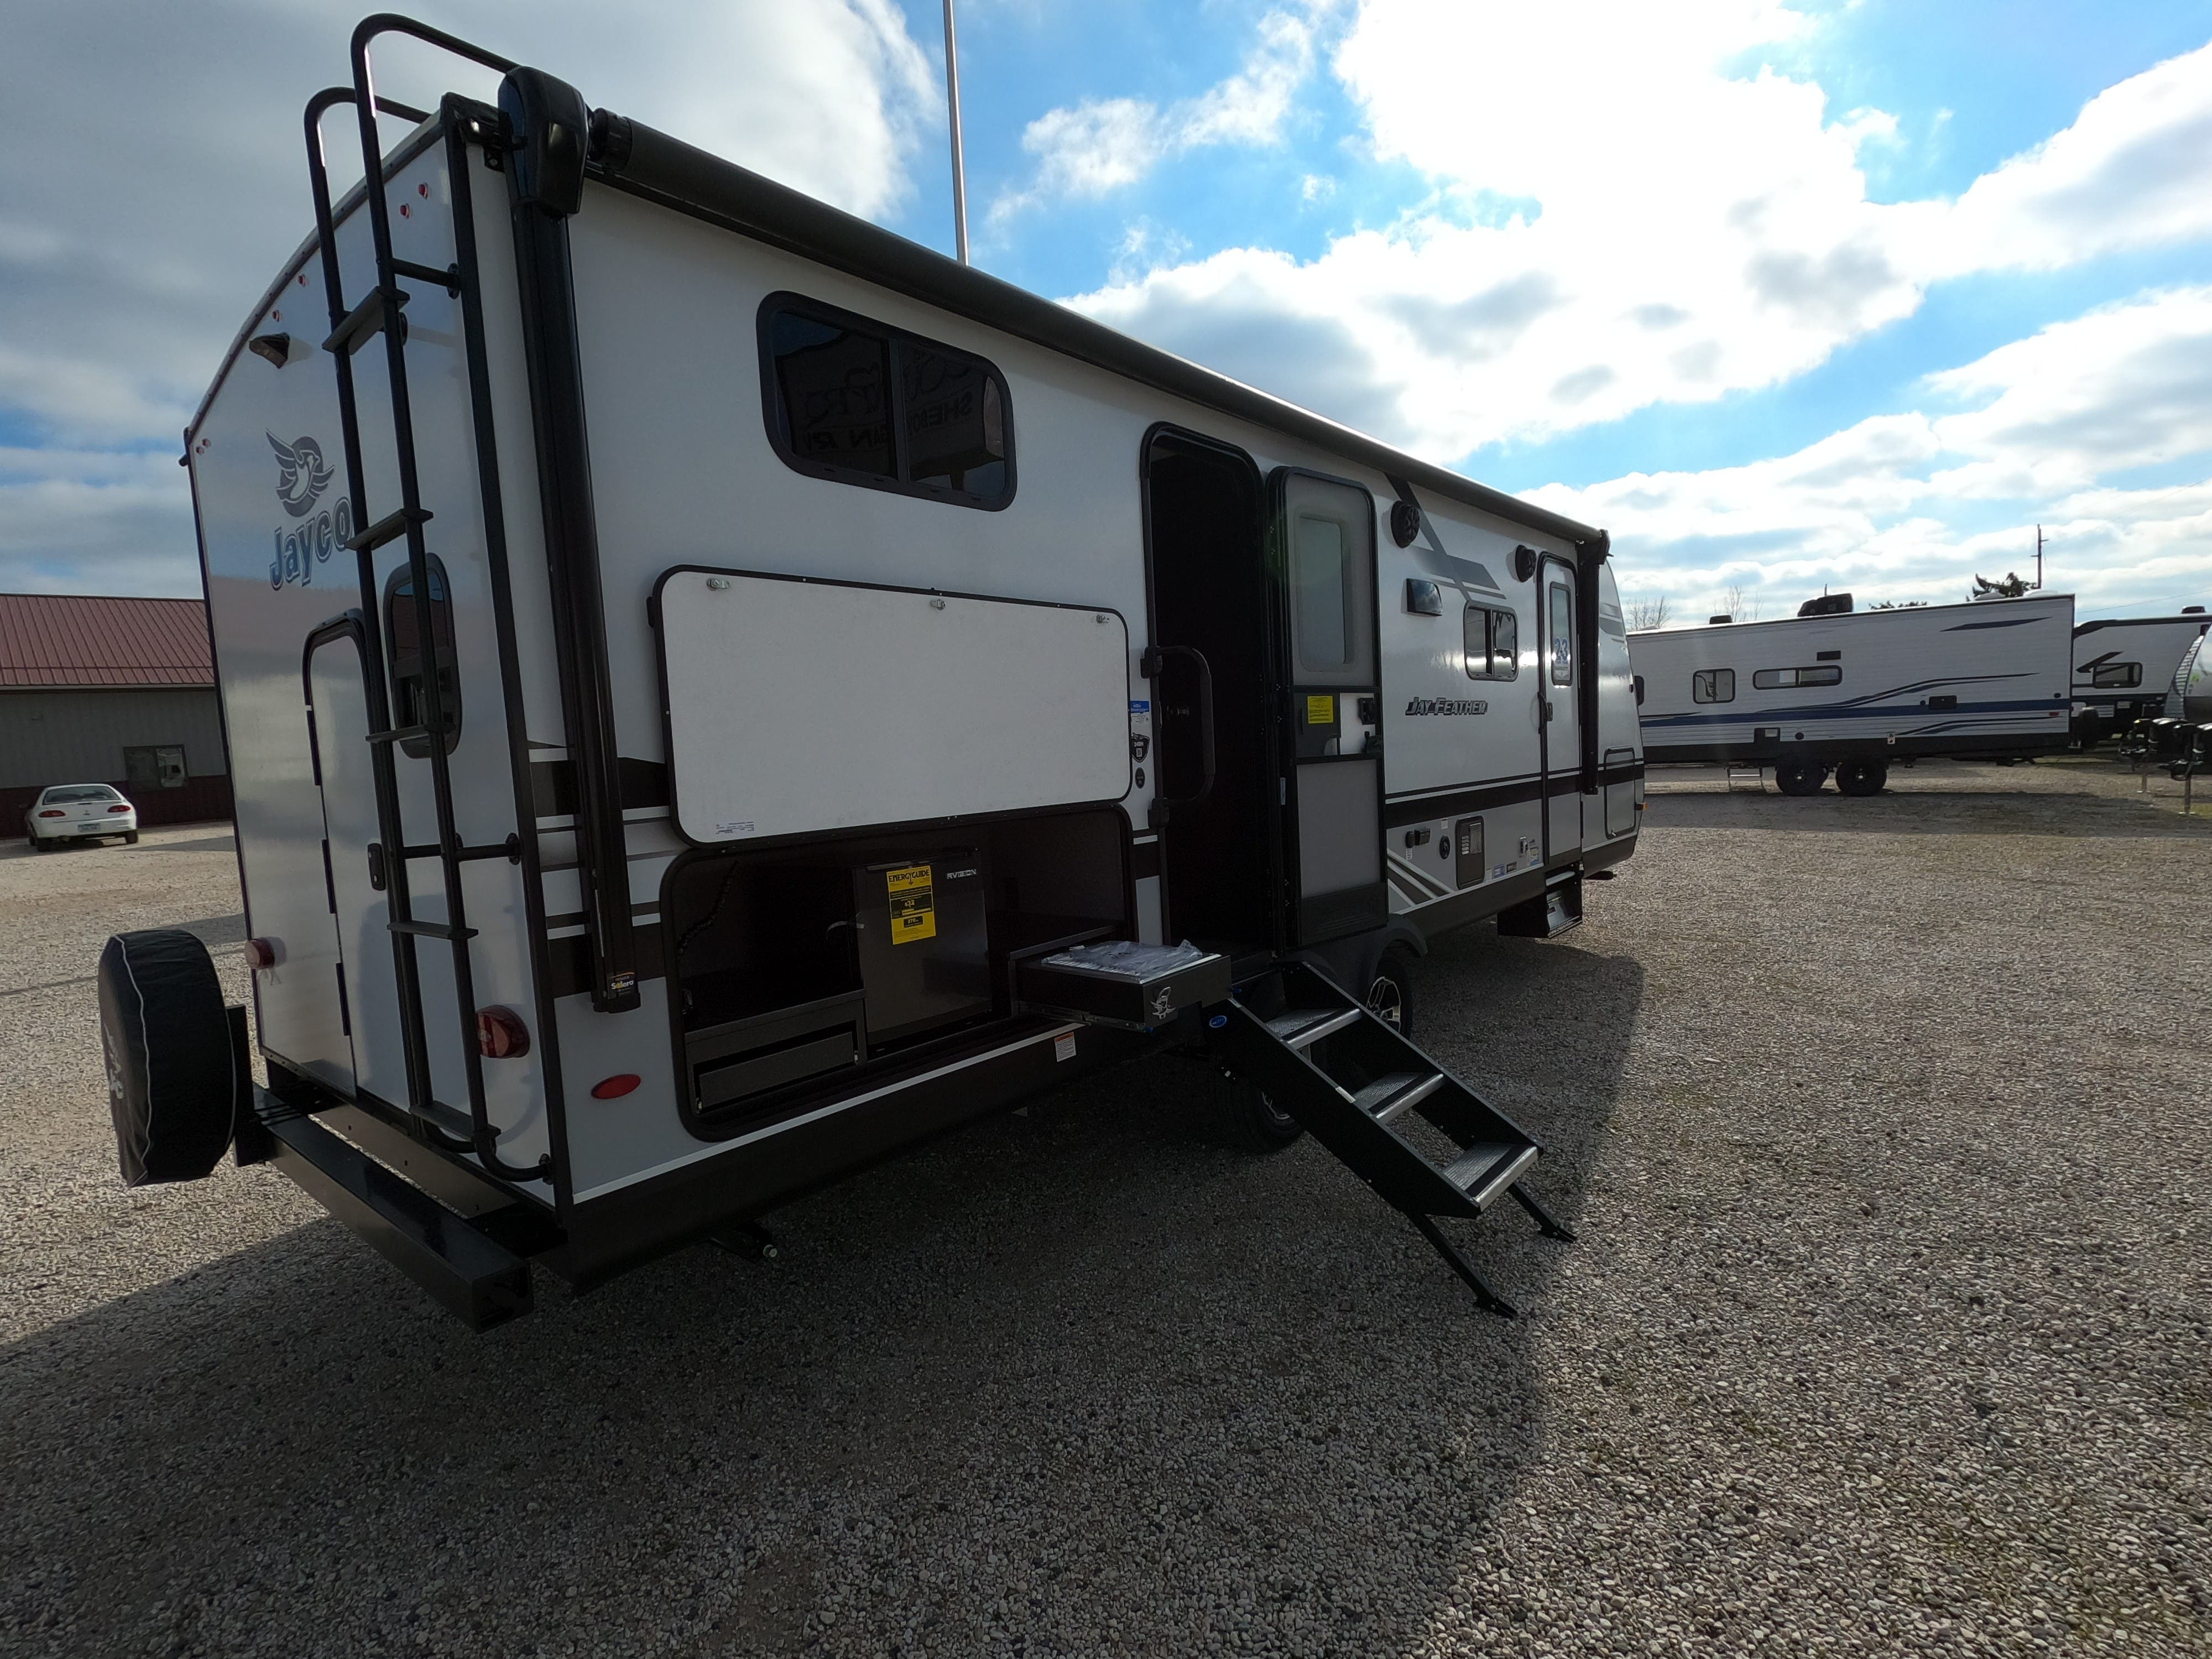 2021 Jayco Jay Feather 24BH - Cleveland, WI - SHV474 for ...